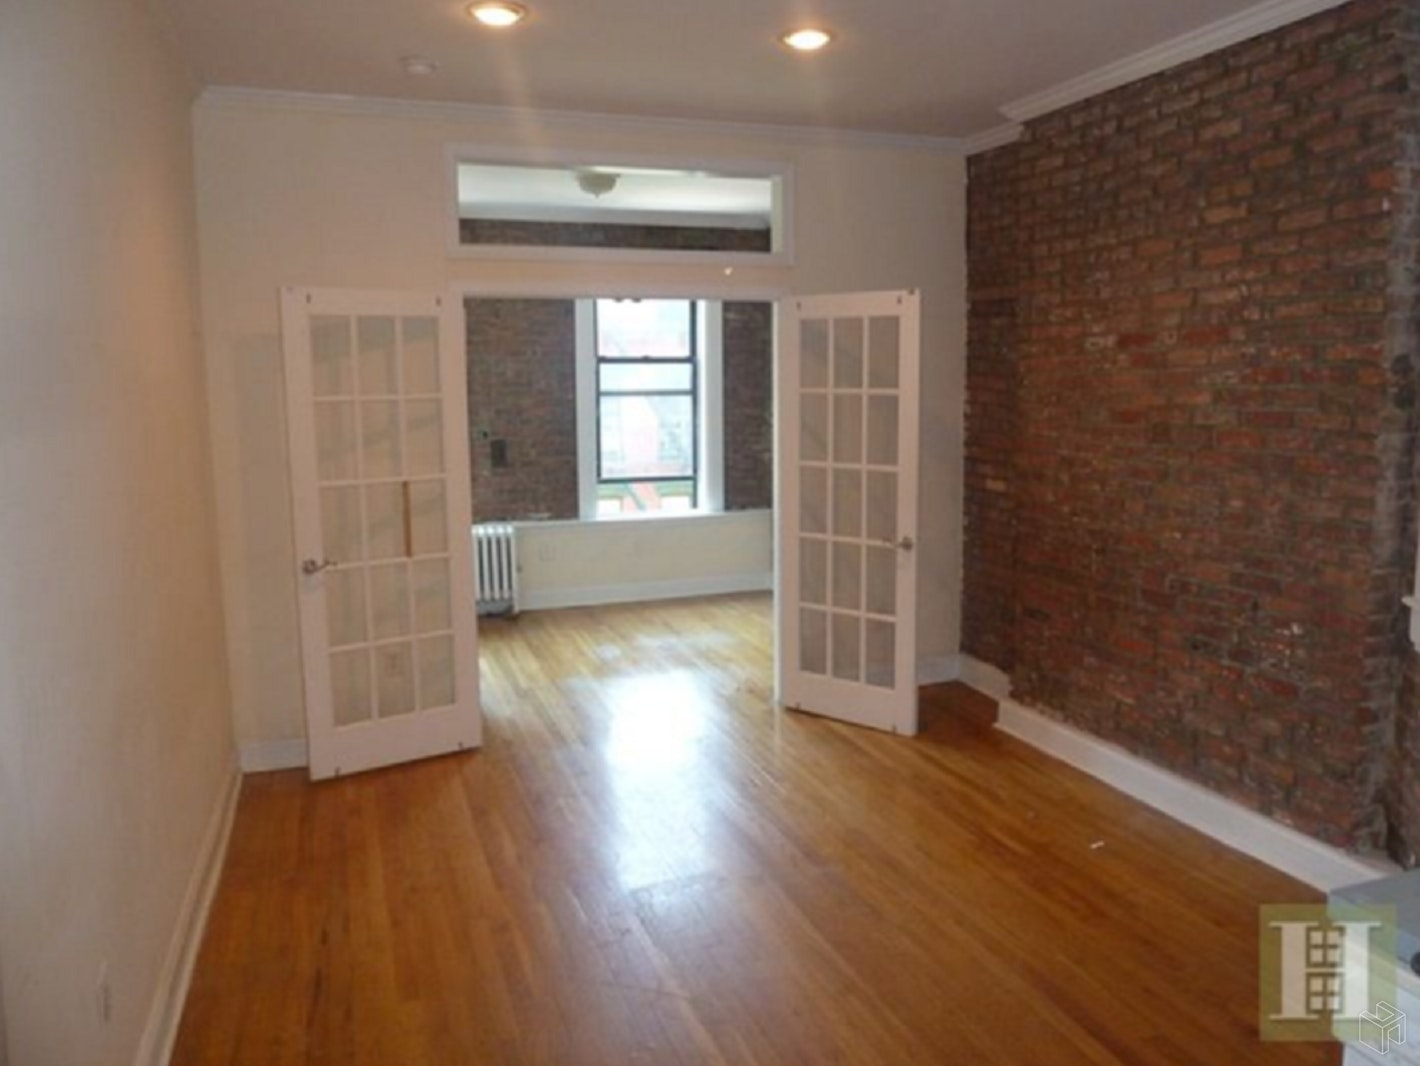 73 East 3rd Street, East Village, NYC, 10003, Price Not Disclosed, Rented Property, Halstead Real Estate, Photo 3